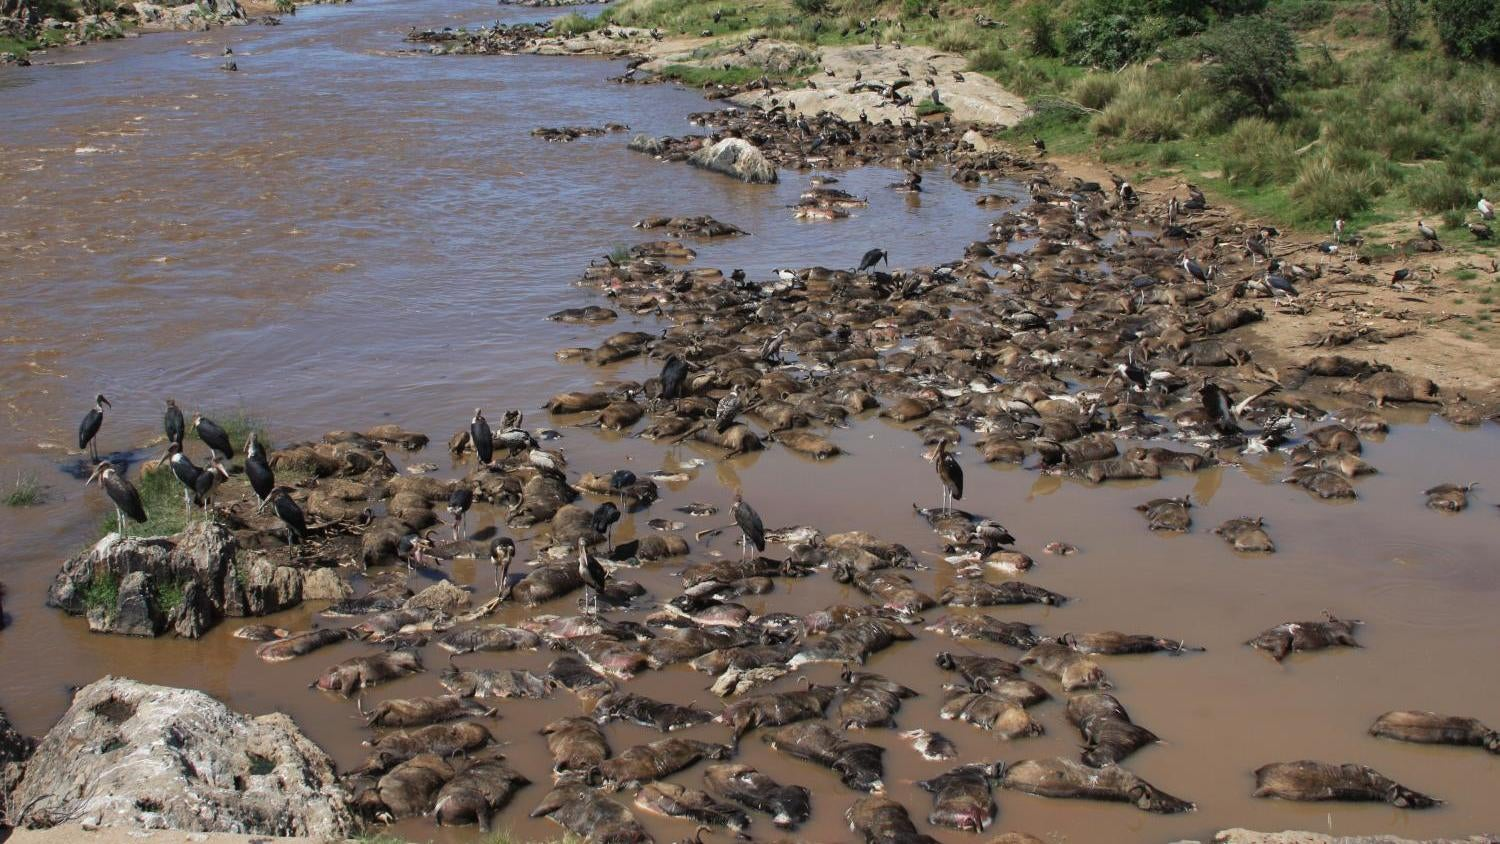 Rotting Wildebeest Carcasses Are A Force Of Nature In The Serengeti